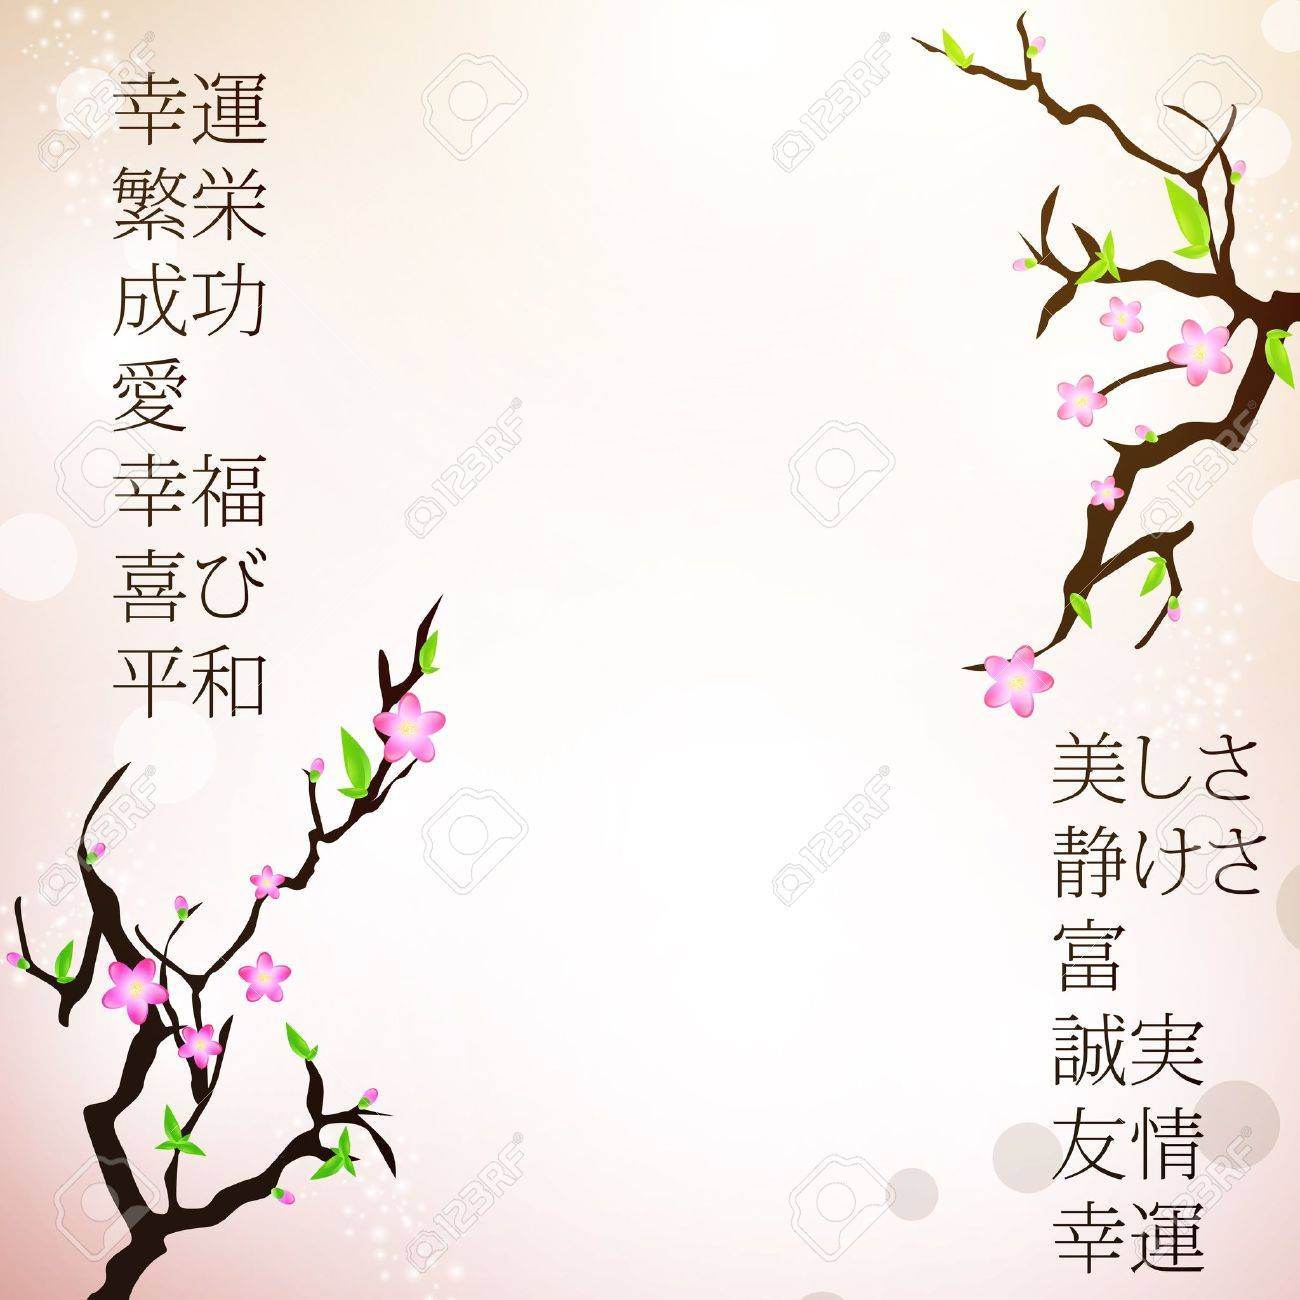 japan motive background with sakura and good wishes - 9173425